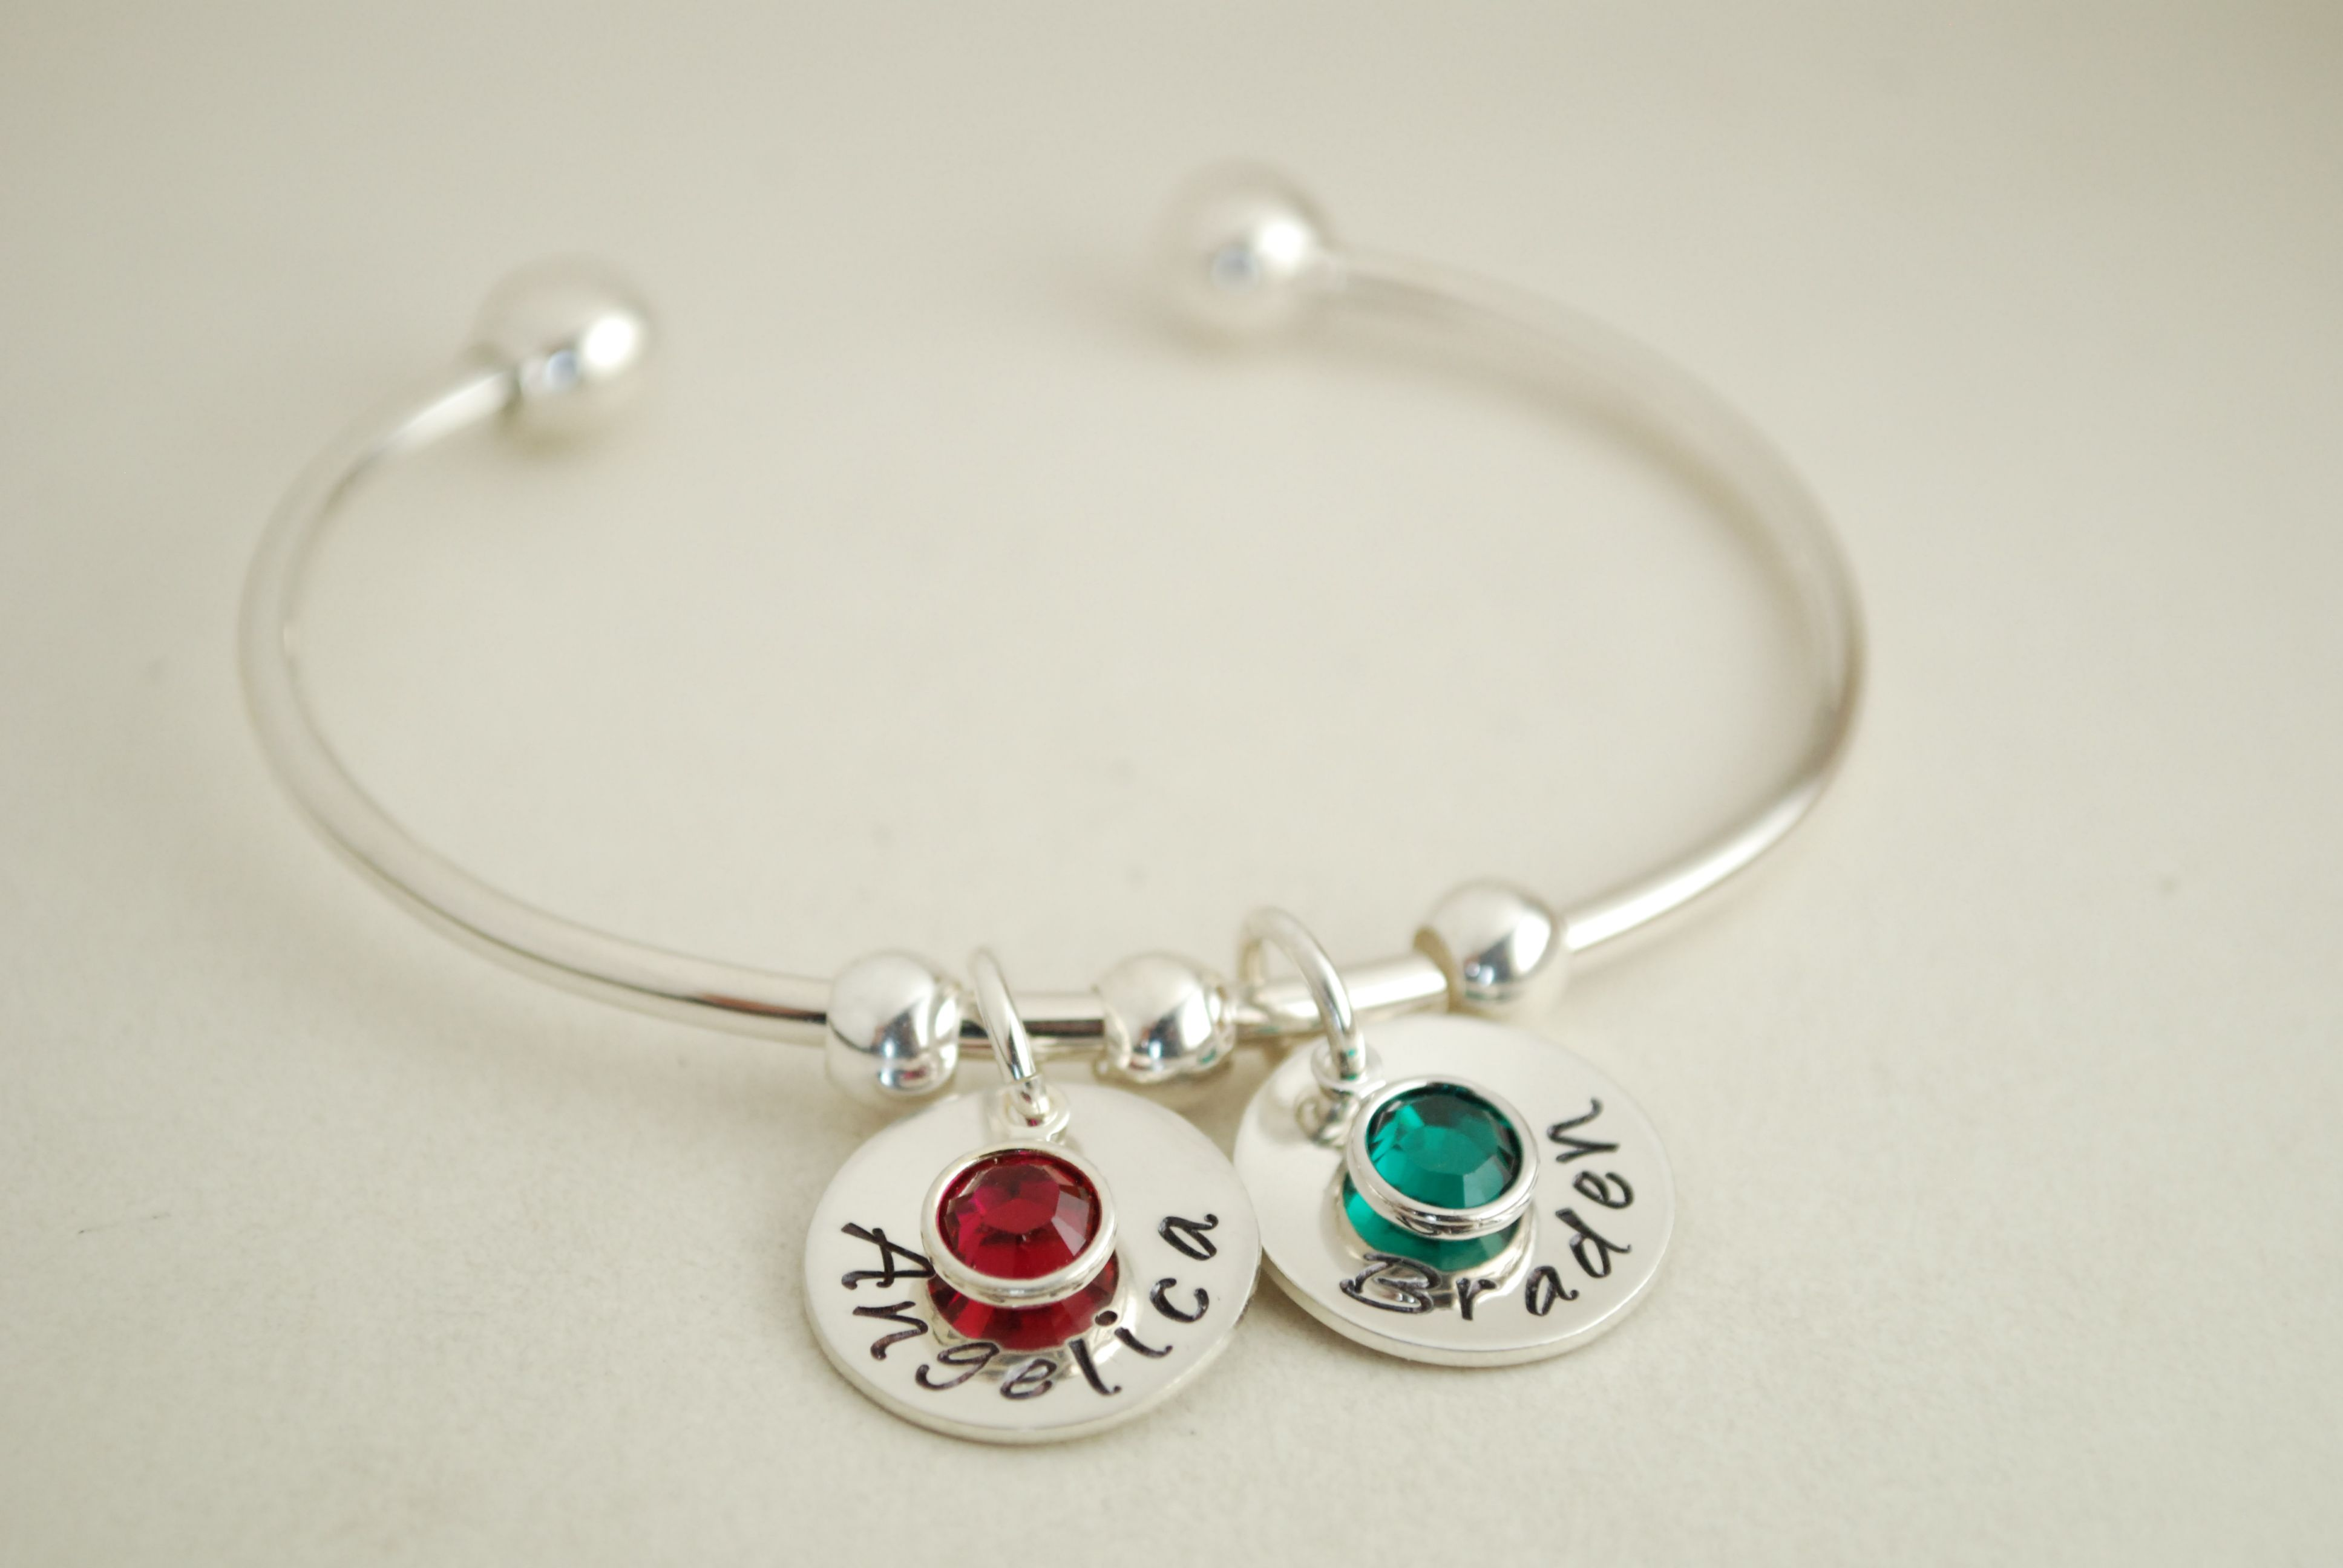 Custom Made Cuff Bracelet With Names Sterling Silver Personalized Bangle Name Charms And Birth Crystals